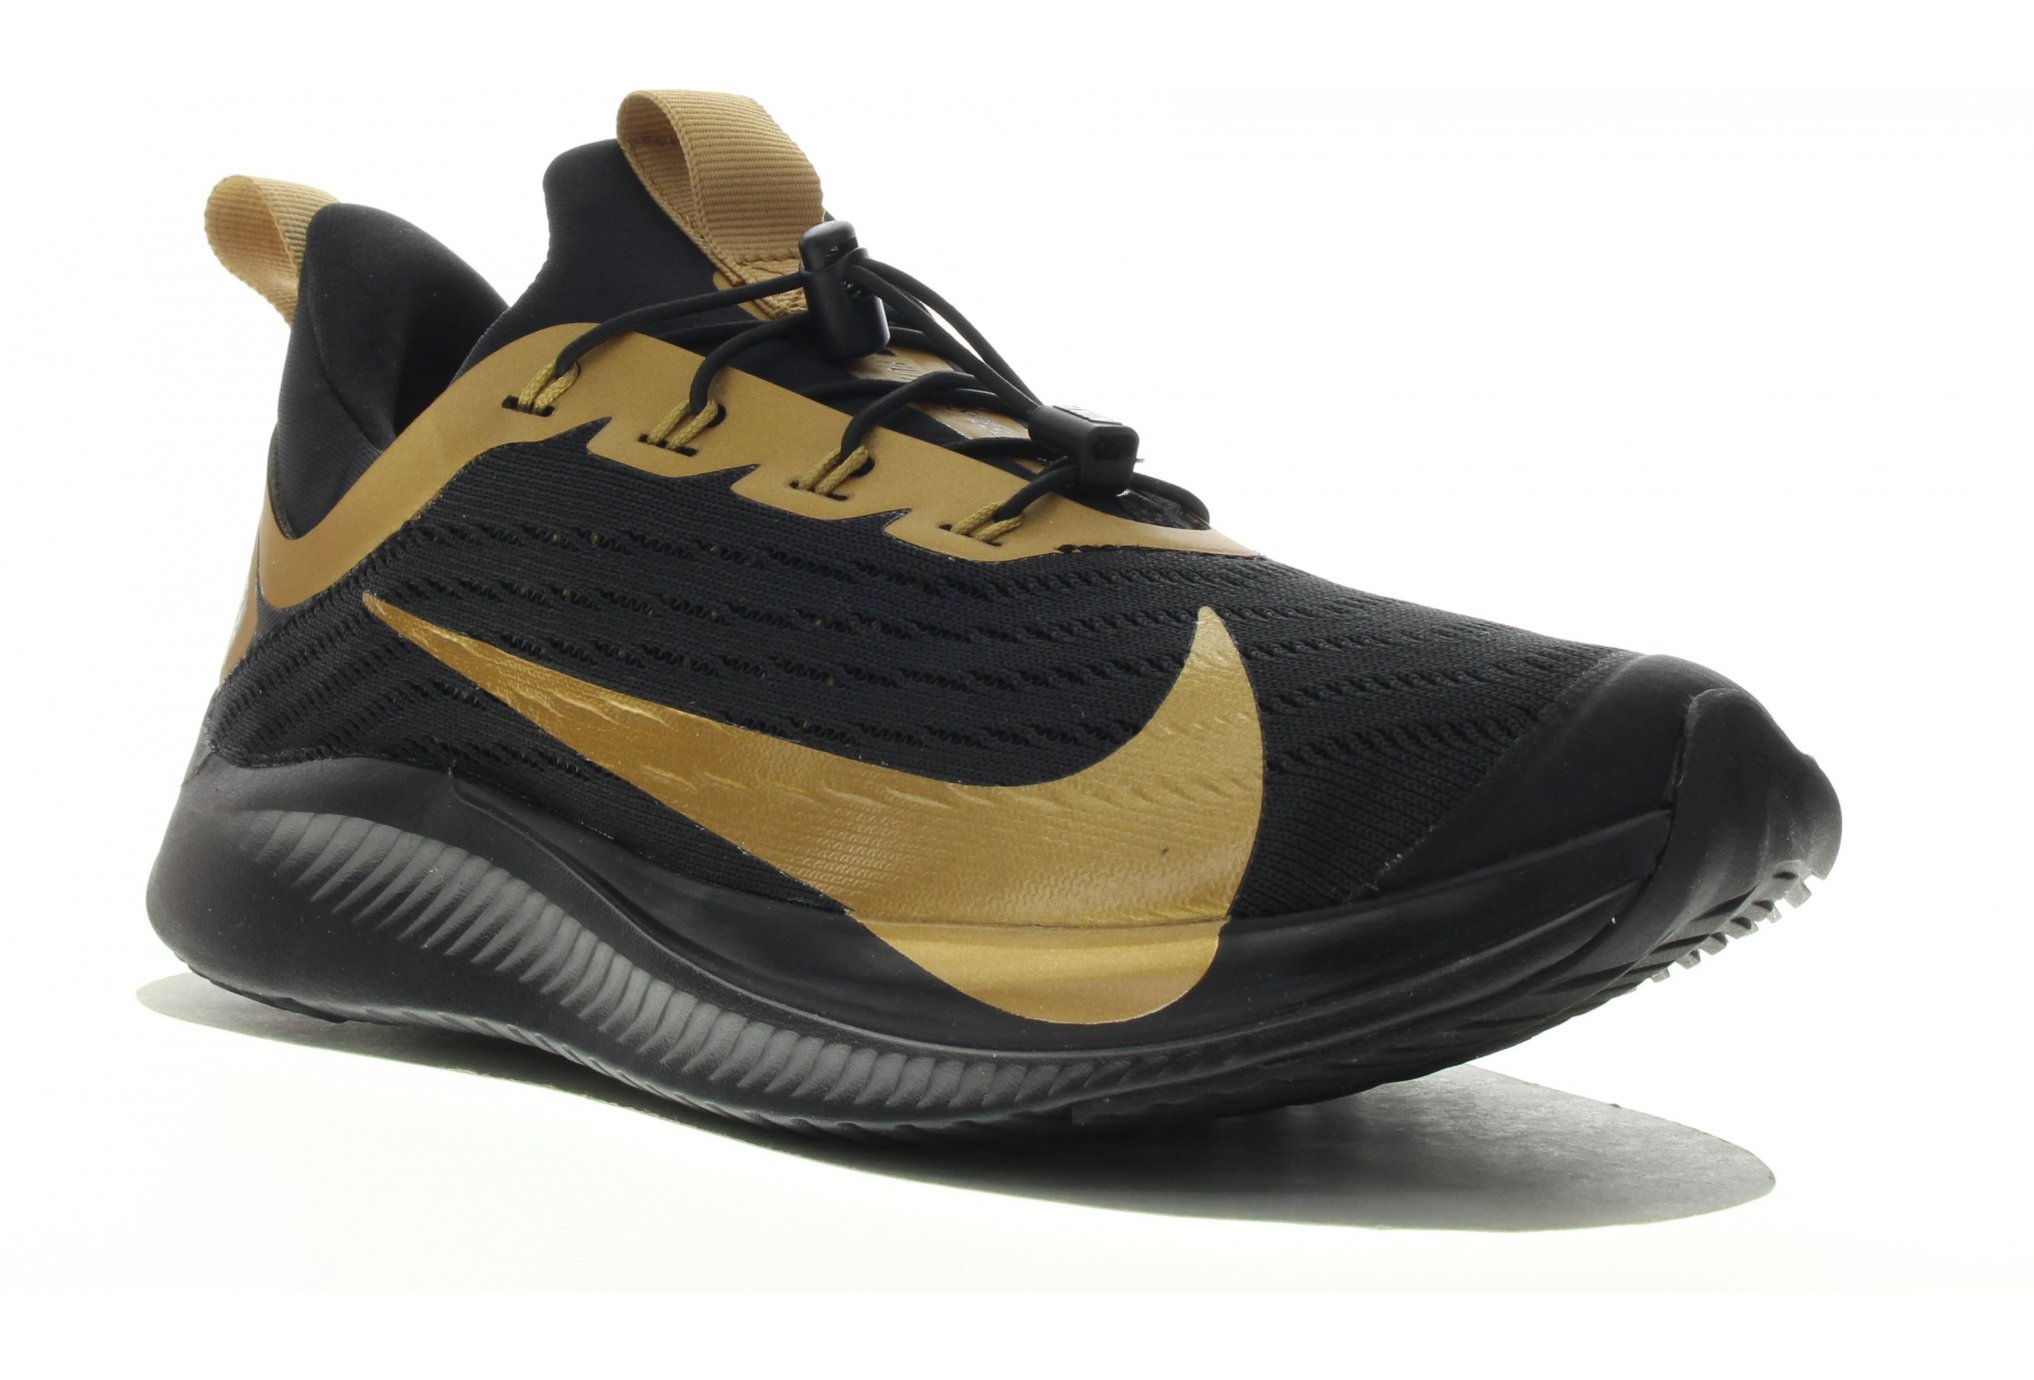 Nike Future Speed 2 Golden Blocks GS Chaussures homme